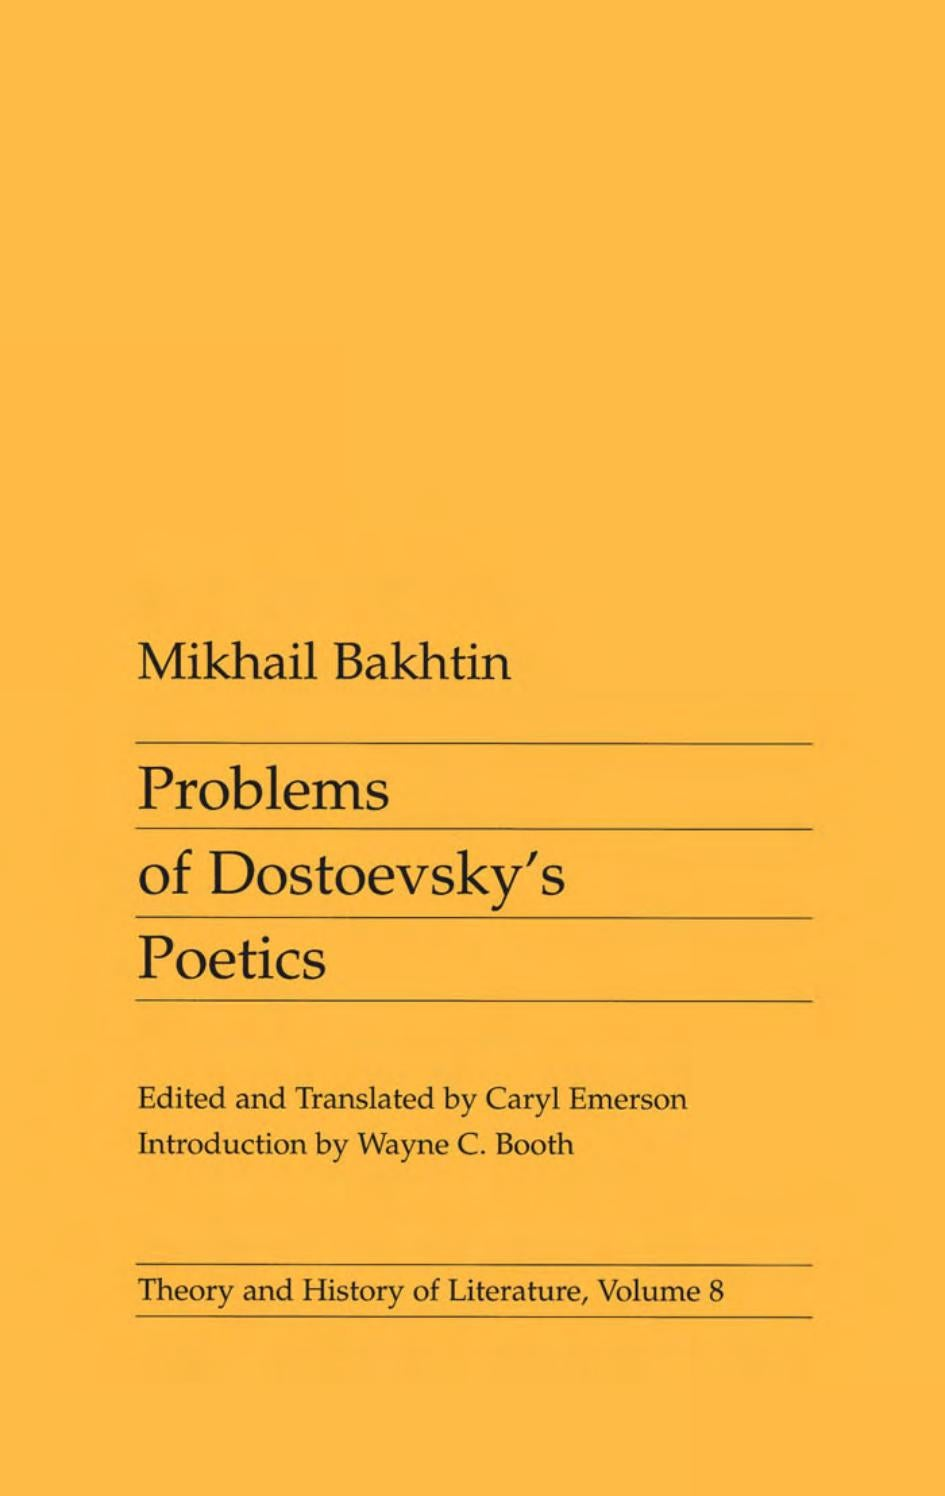 summary on mikhail bakhtins problems of Of biographical criticism and psychoanalytical analysis of both jude and hardy 5   in the 1930's, bakhtin's problems of dostoevsky's poetics was the only work.